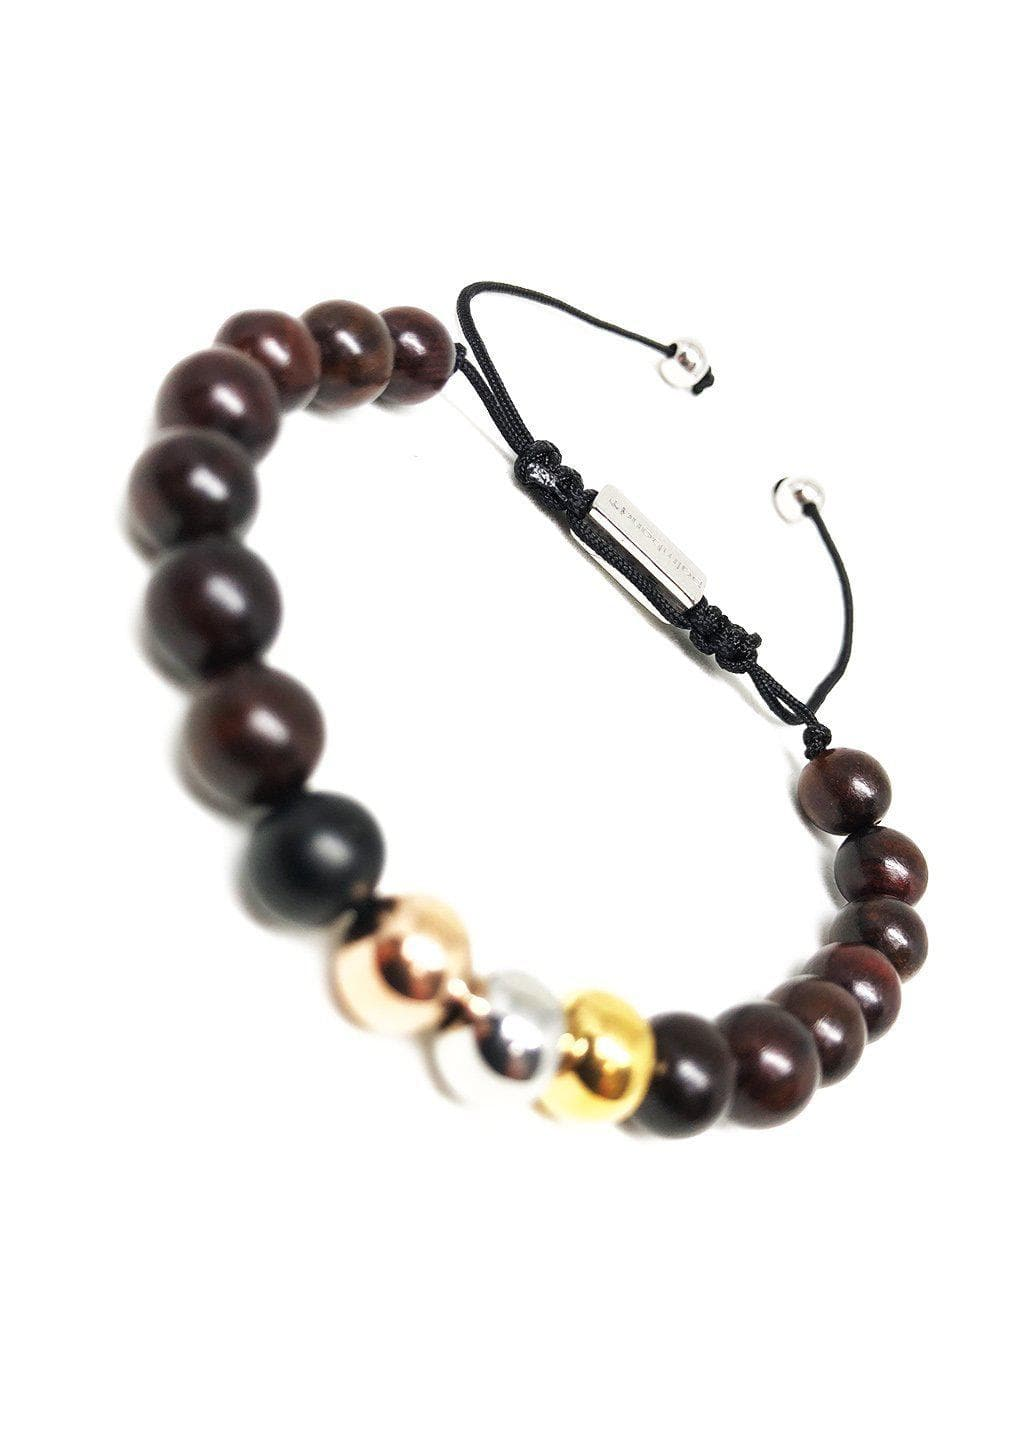 Palm Band - Bead Bracelet - zerpico